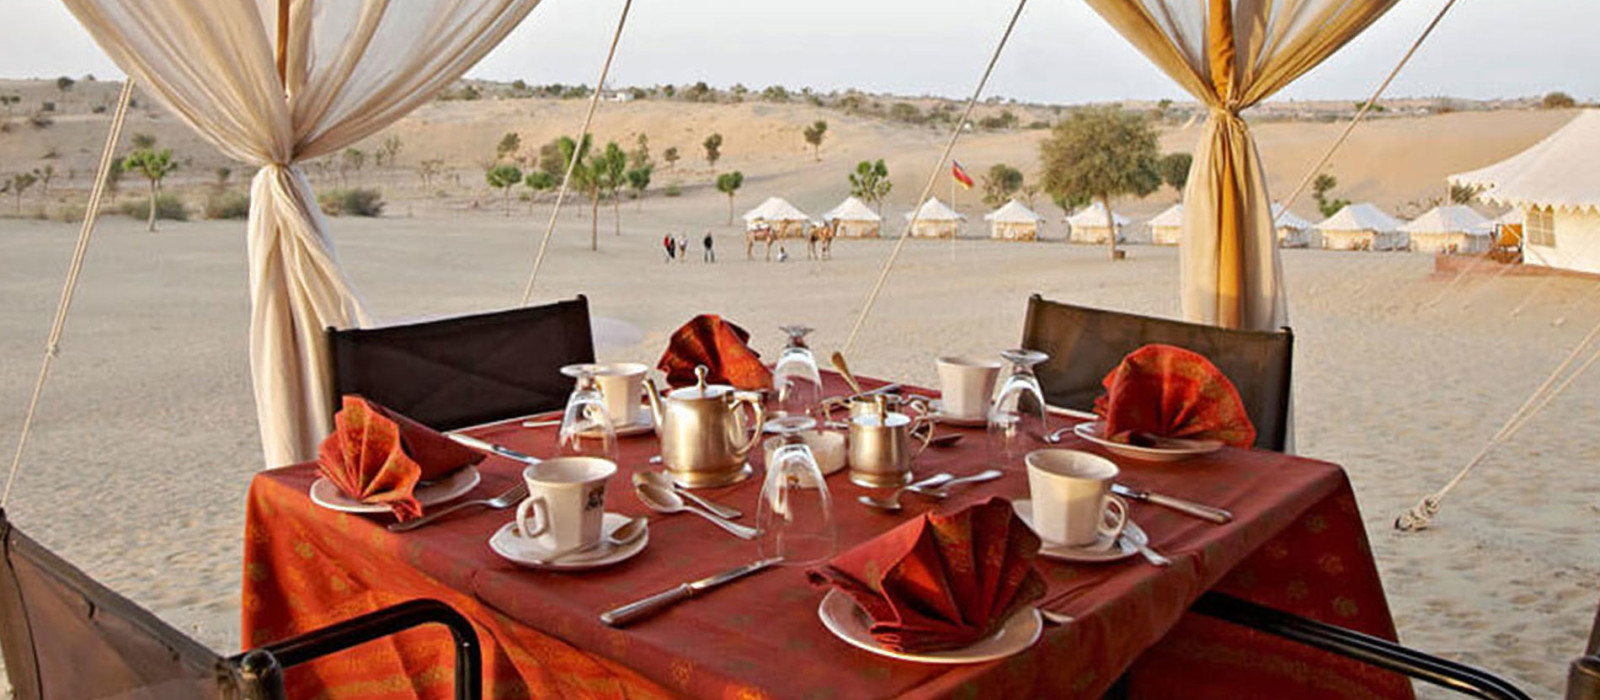 Hotel Manvar Desert Resort North India